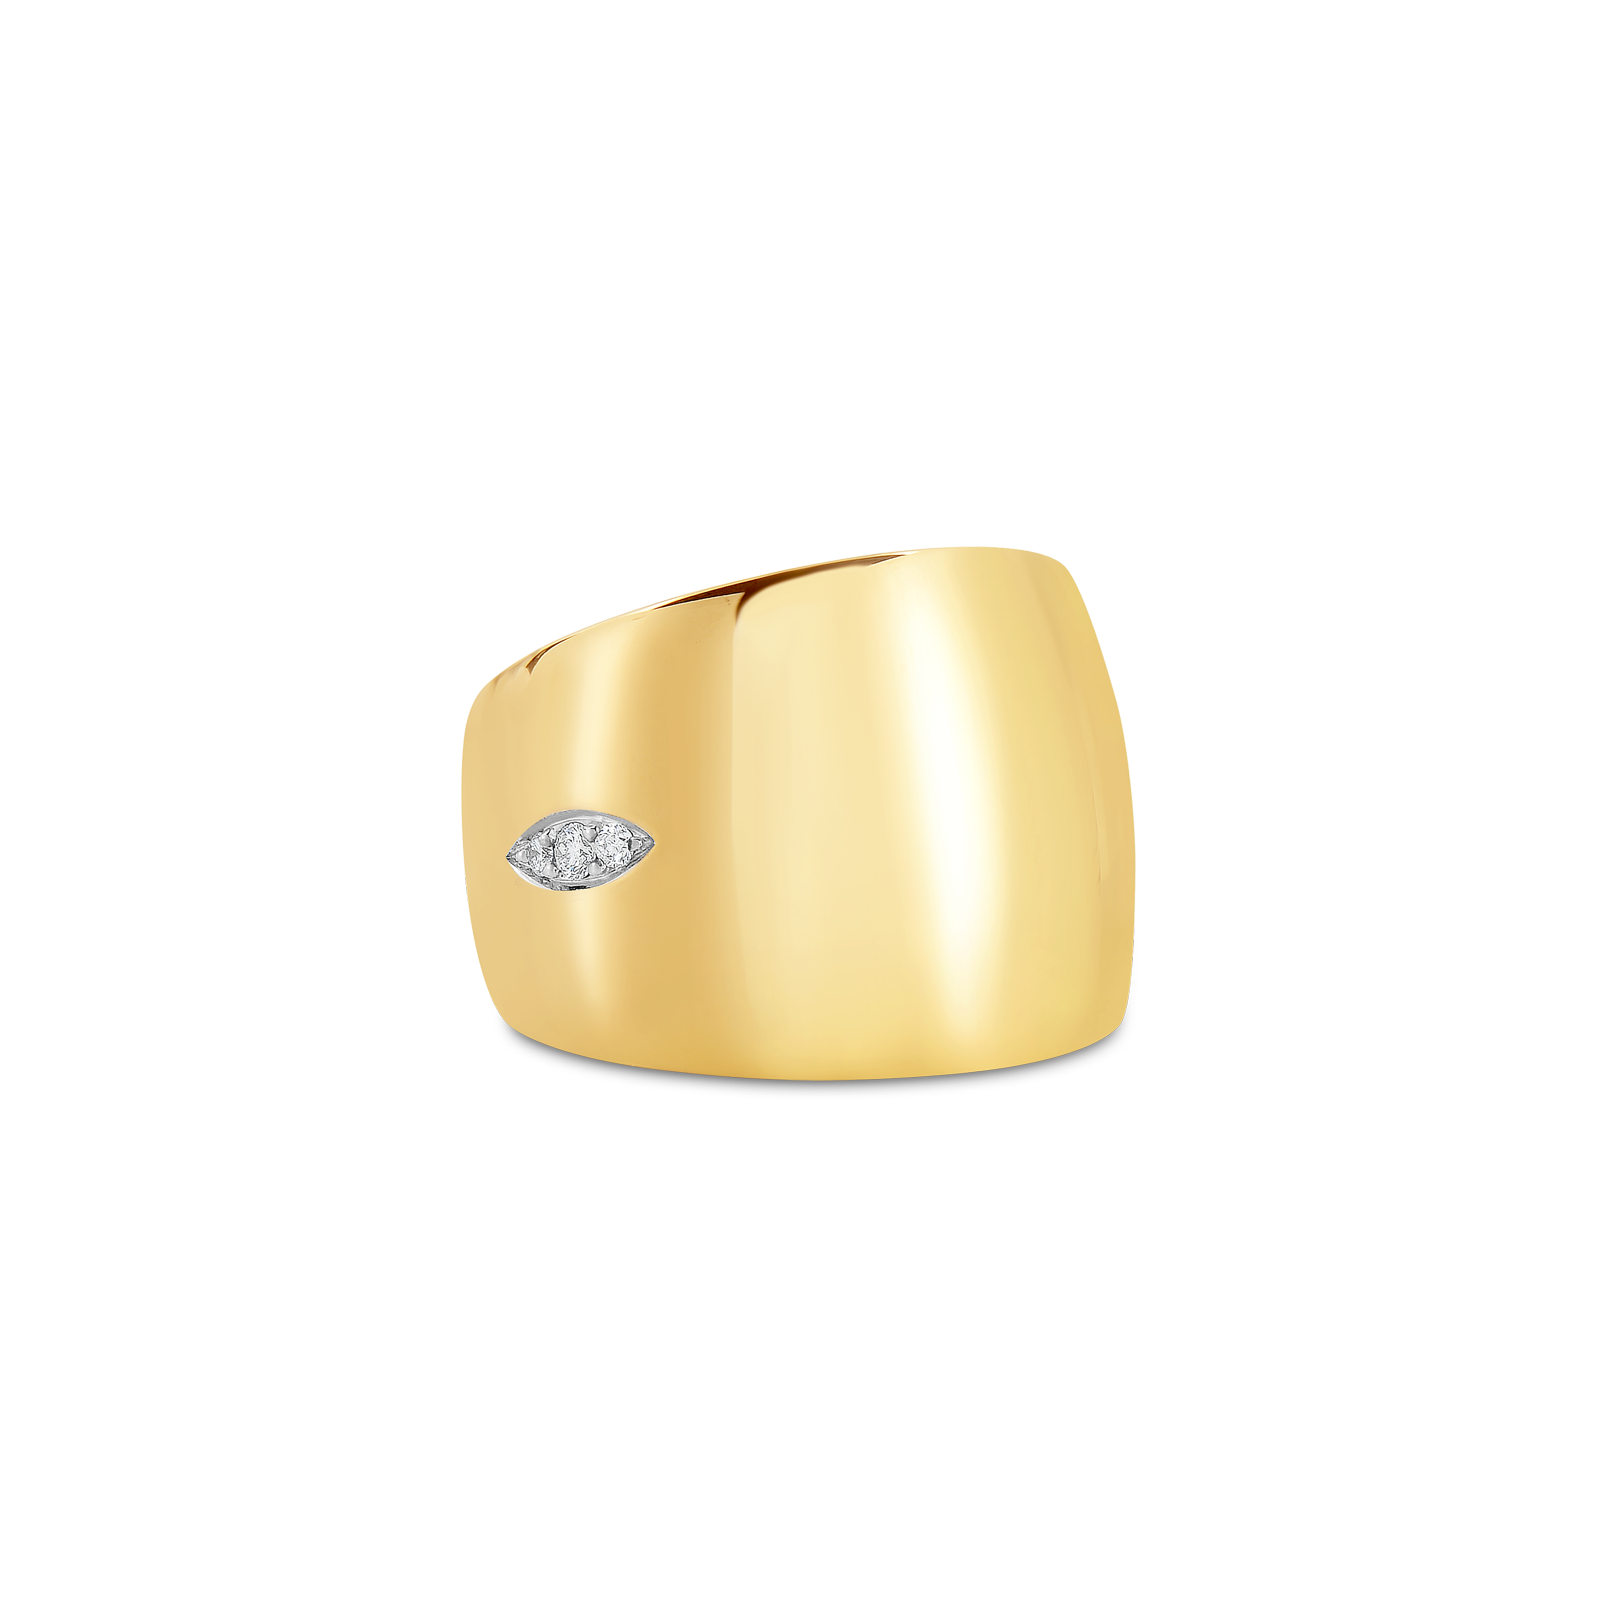 Roberto-Coin-Golden-Gate-18K-Yellow-Gold-and-18K-White-Gold-Ring-with-Diamonds-7771157AJ65X